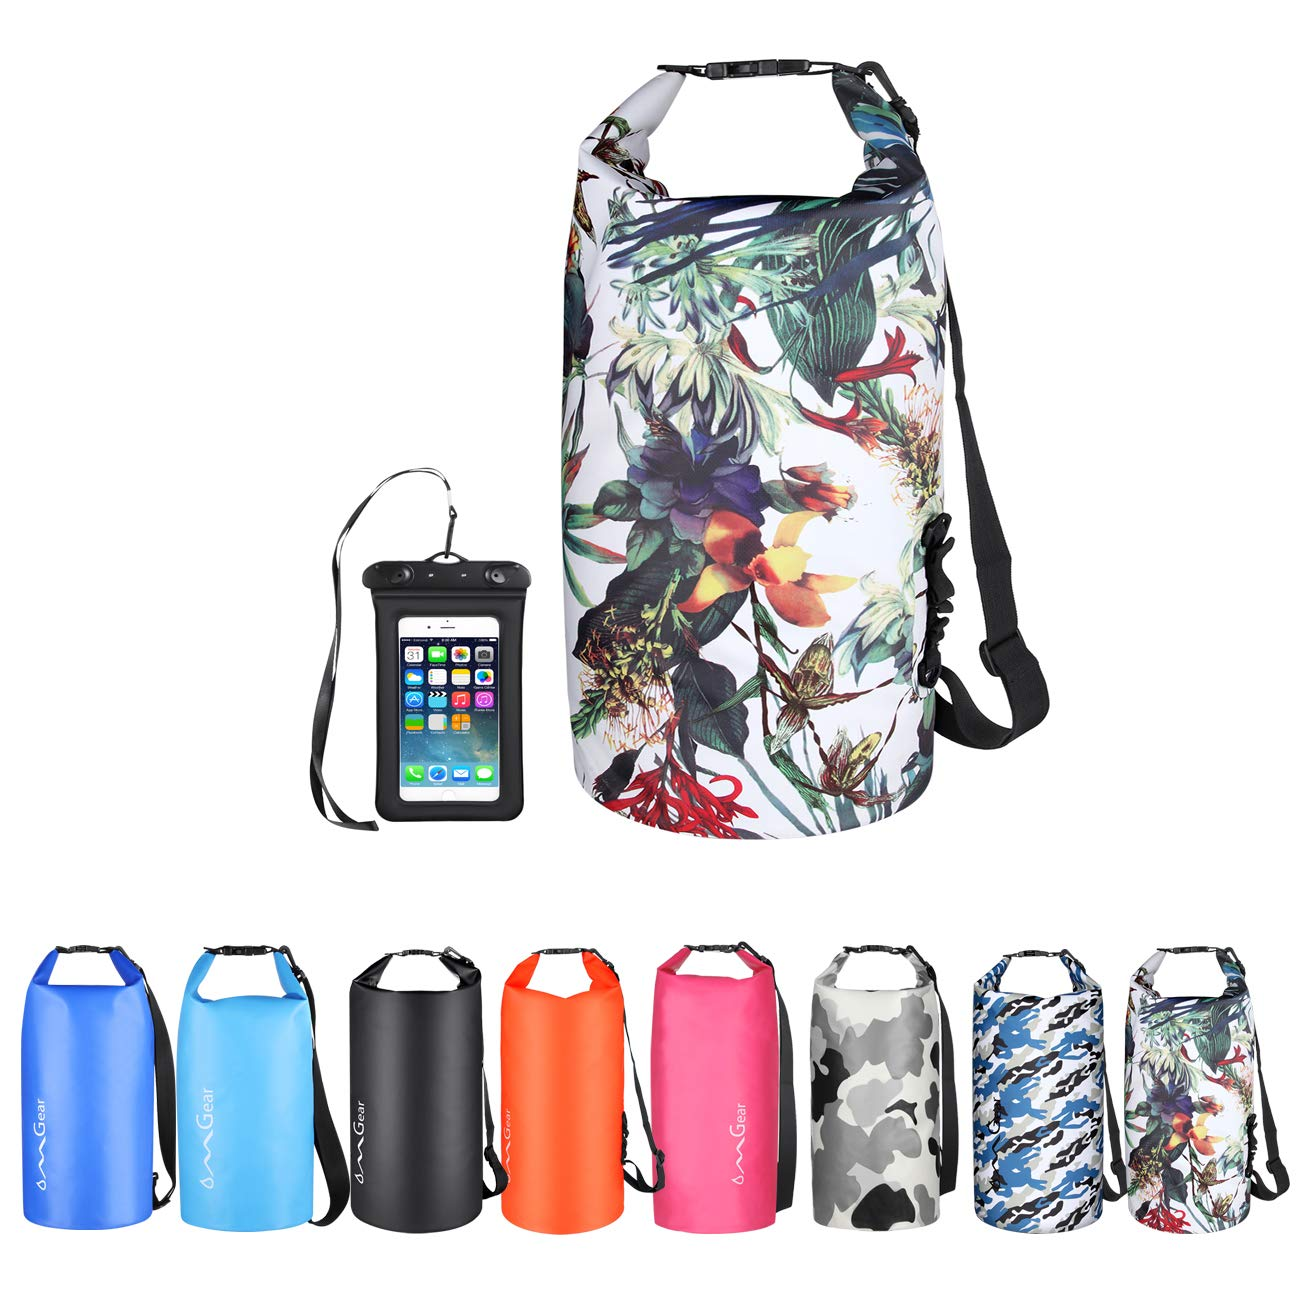 OMGear Waterproof Dry Bag Backpack Waterproof Phone Pouch 40L/30L/20L/10L/5L Floating Dry Sack for Kayaking Boating Sailing Canoeing Rafting Hiking Camping Outdoors Activities (camouflage1, 10L) by OMGear